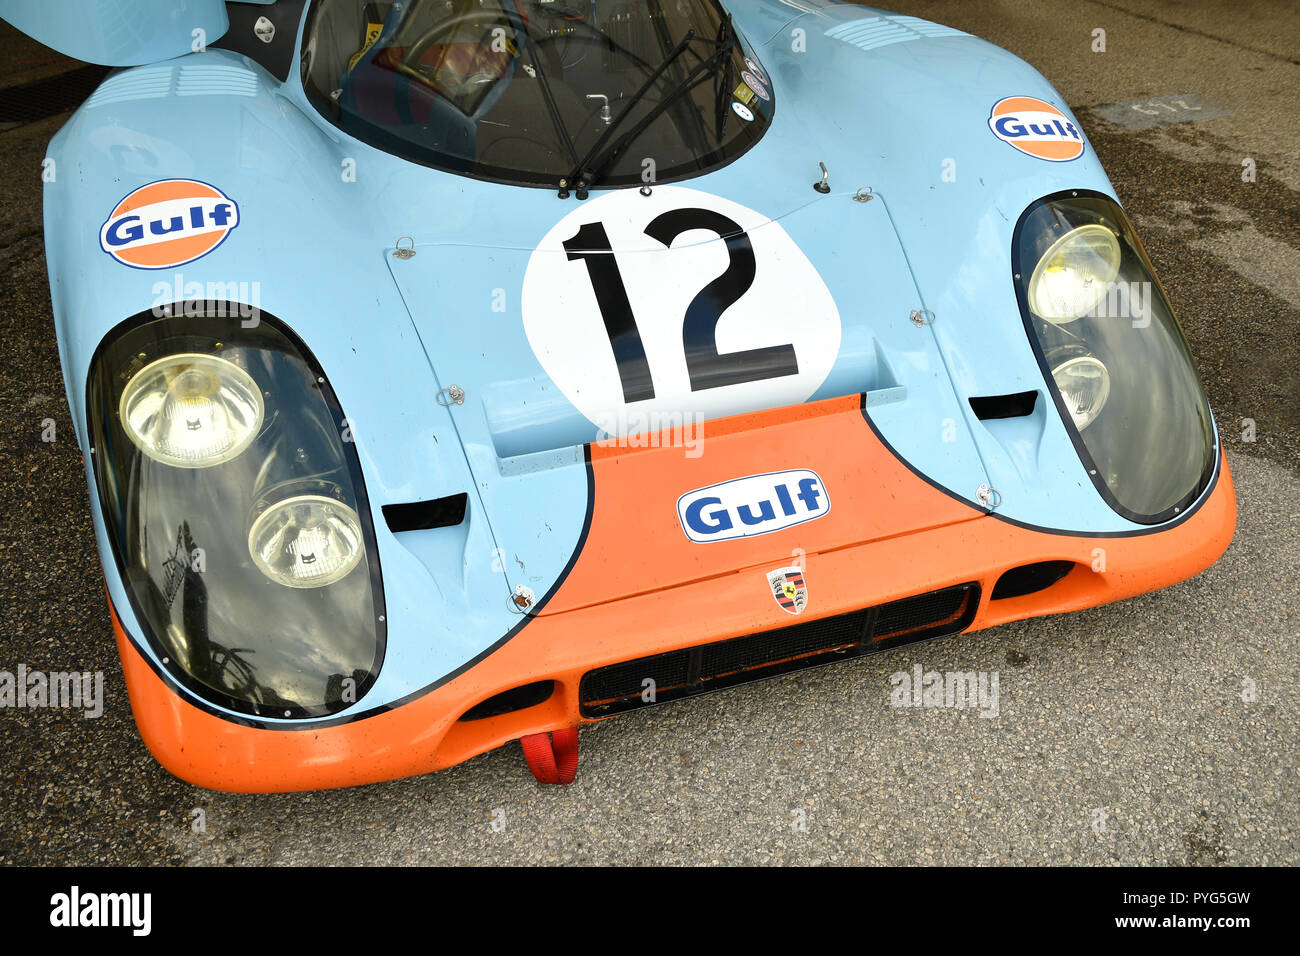 Imola, Italy. 26th October 2018. Imola Classic 26 October 2018: Porsche 917 1970 Gulf Livery ex Attwood/Elford in the paddock at Imola Circuit, Italy. Credit: dan74/Alamy Live News - Stock Image